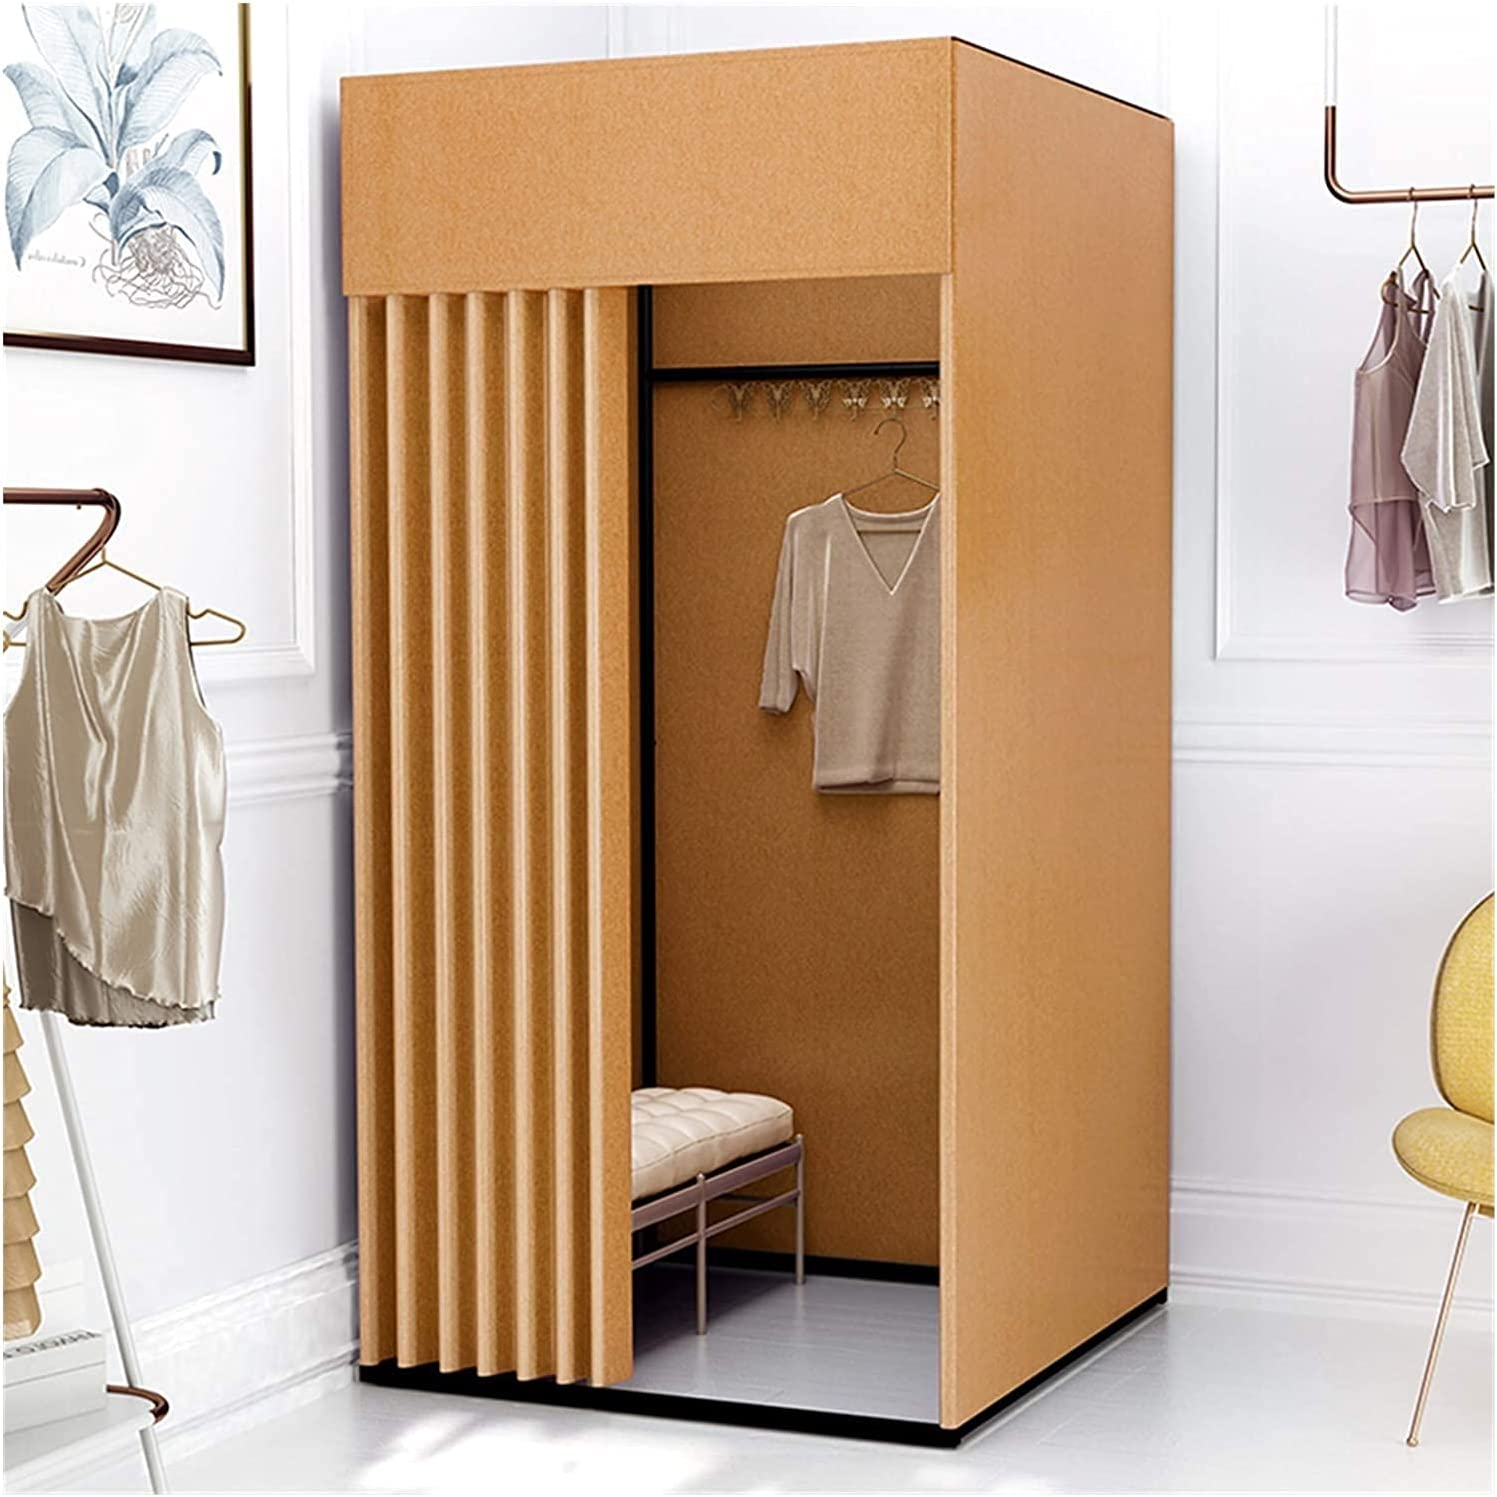 Detached Changing New Shipping Free Shipping Room,Privacy Partition F Fashionable Scre Tent Temporary